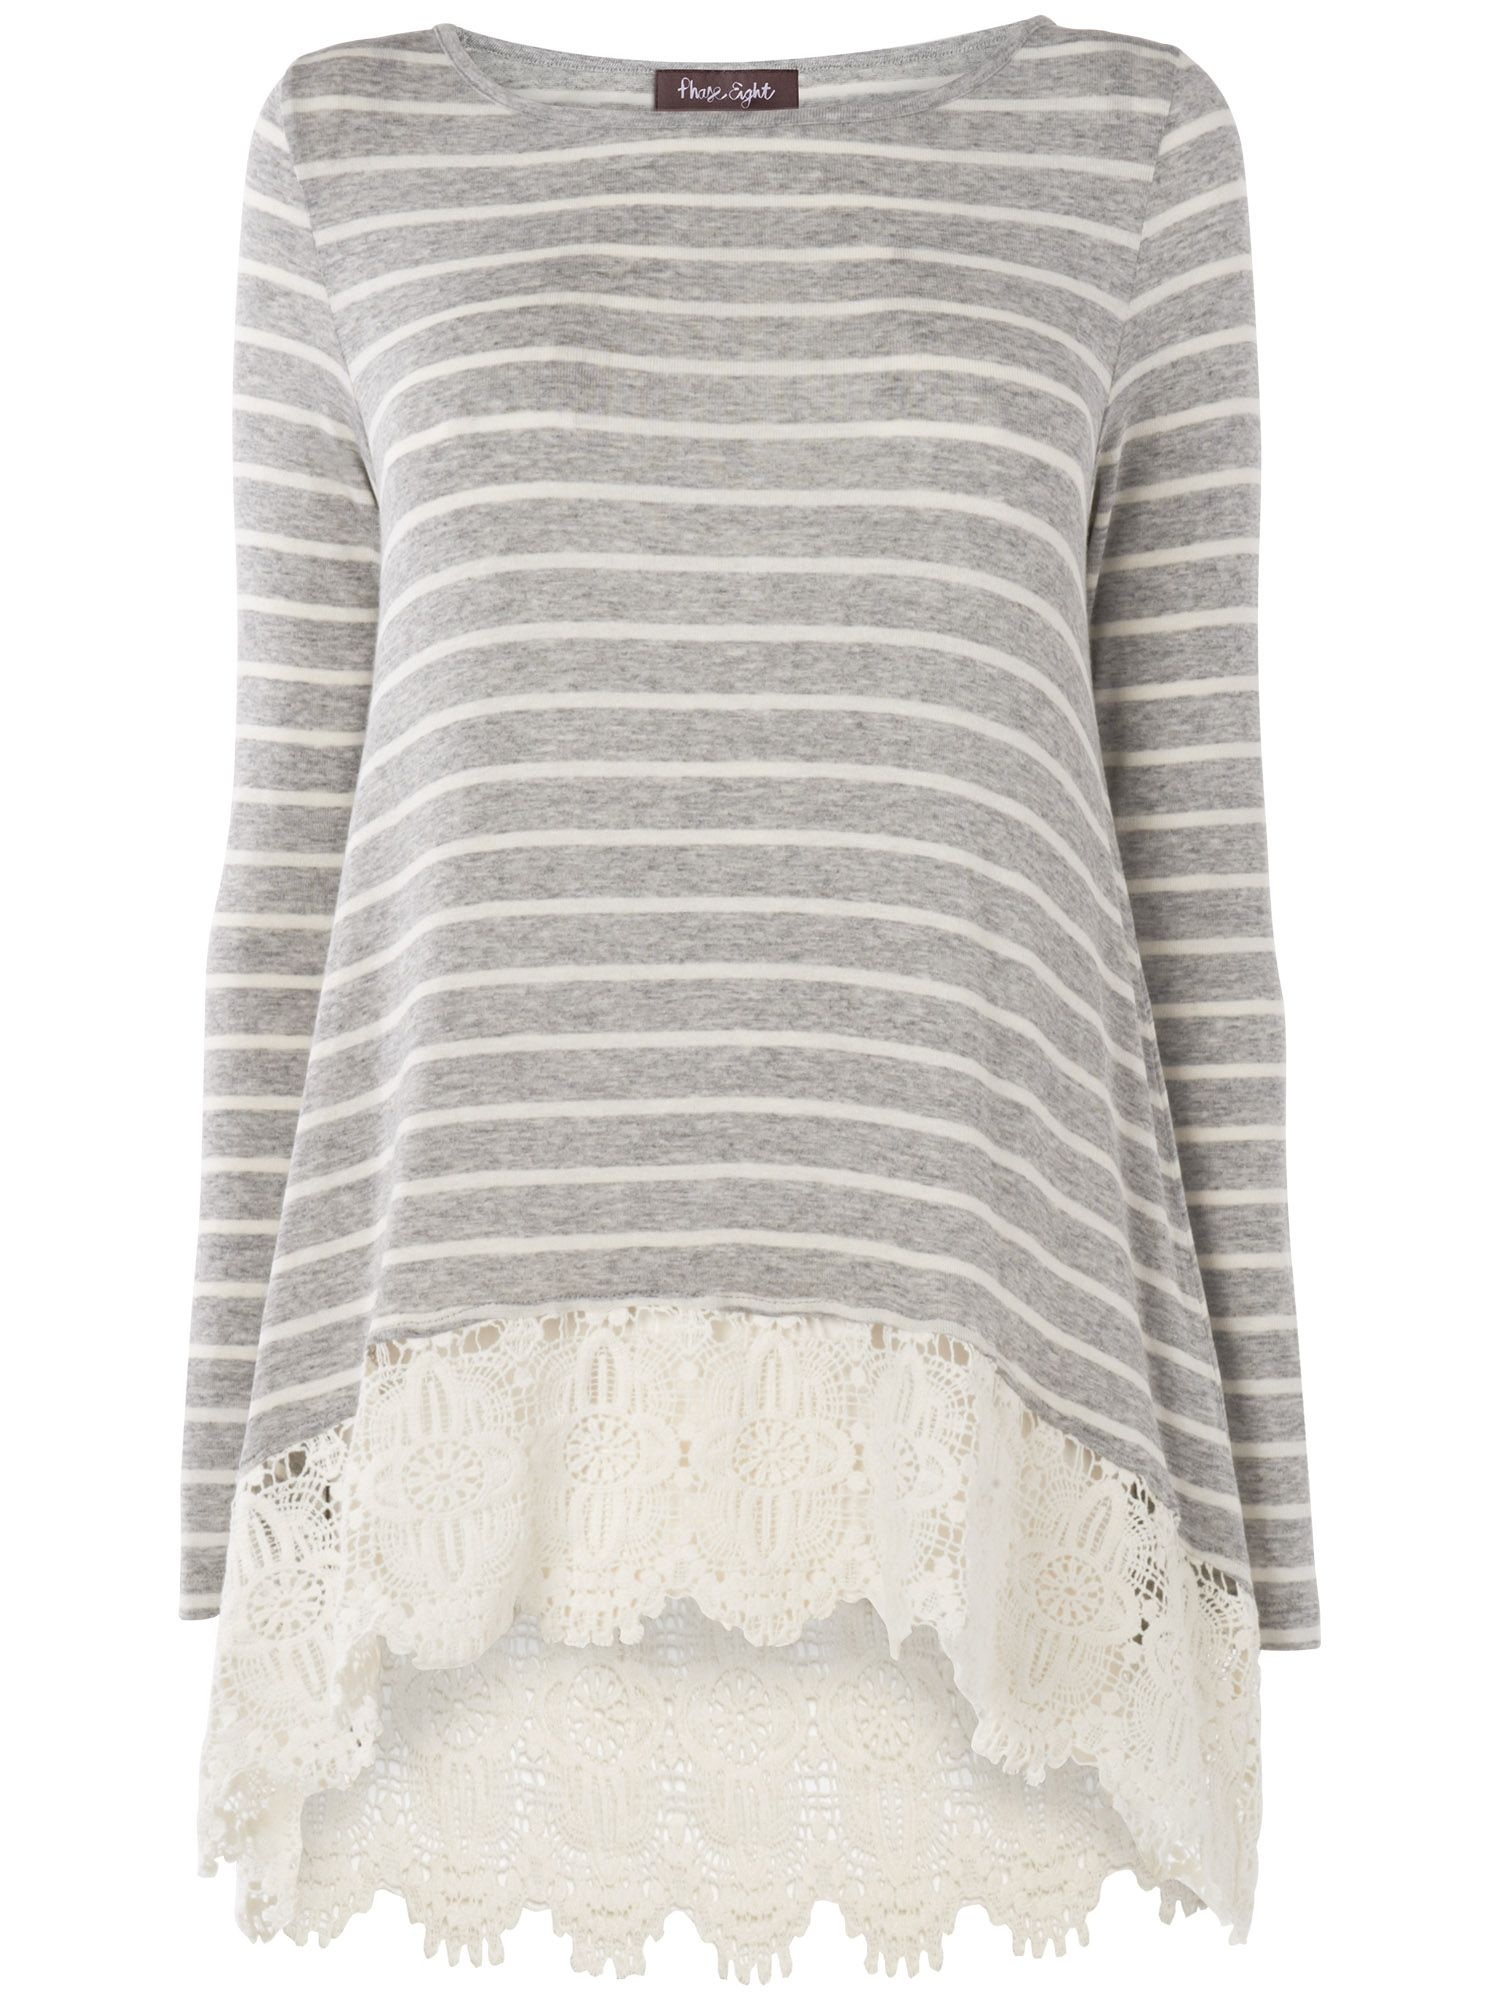 Stripe lace joplin top